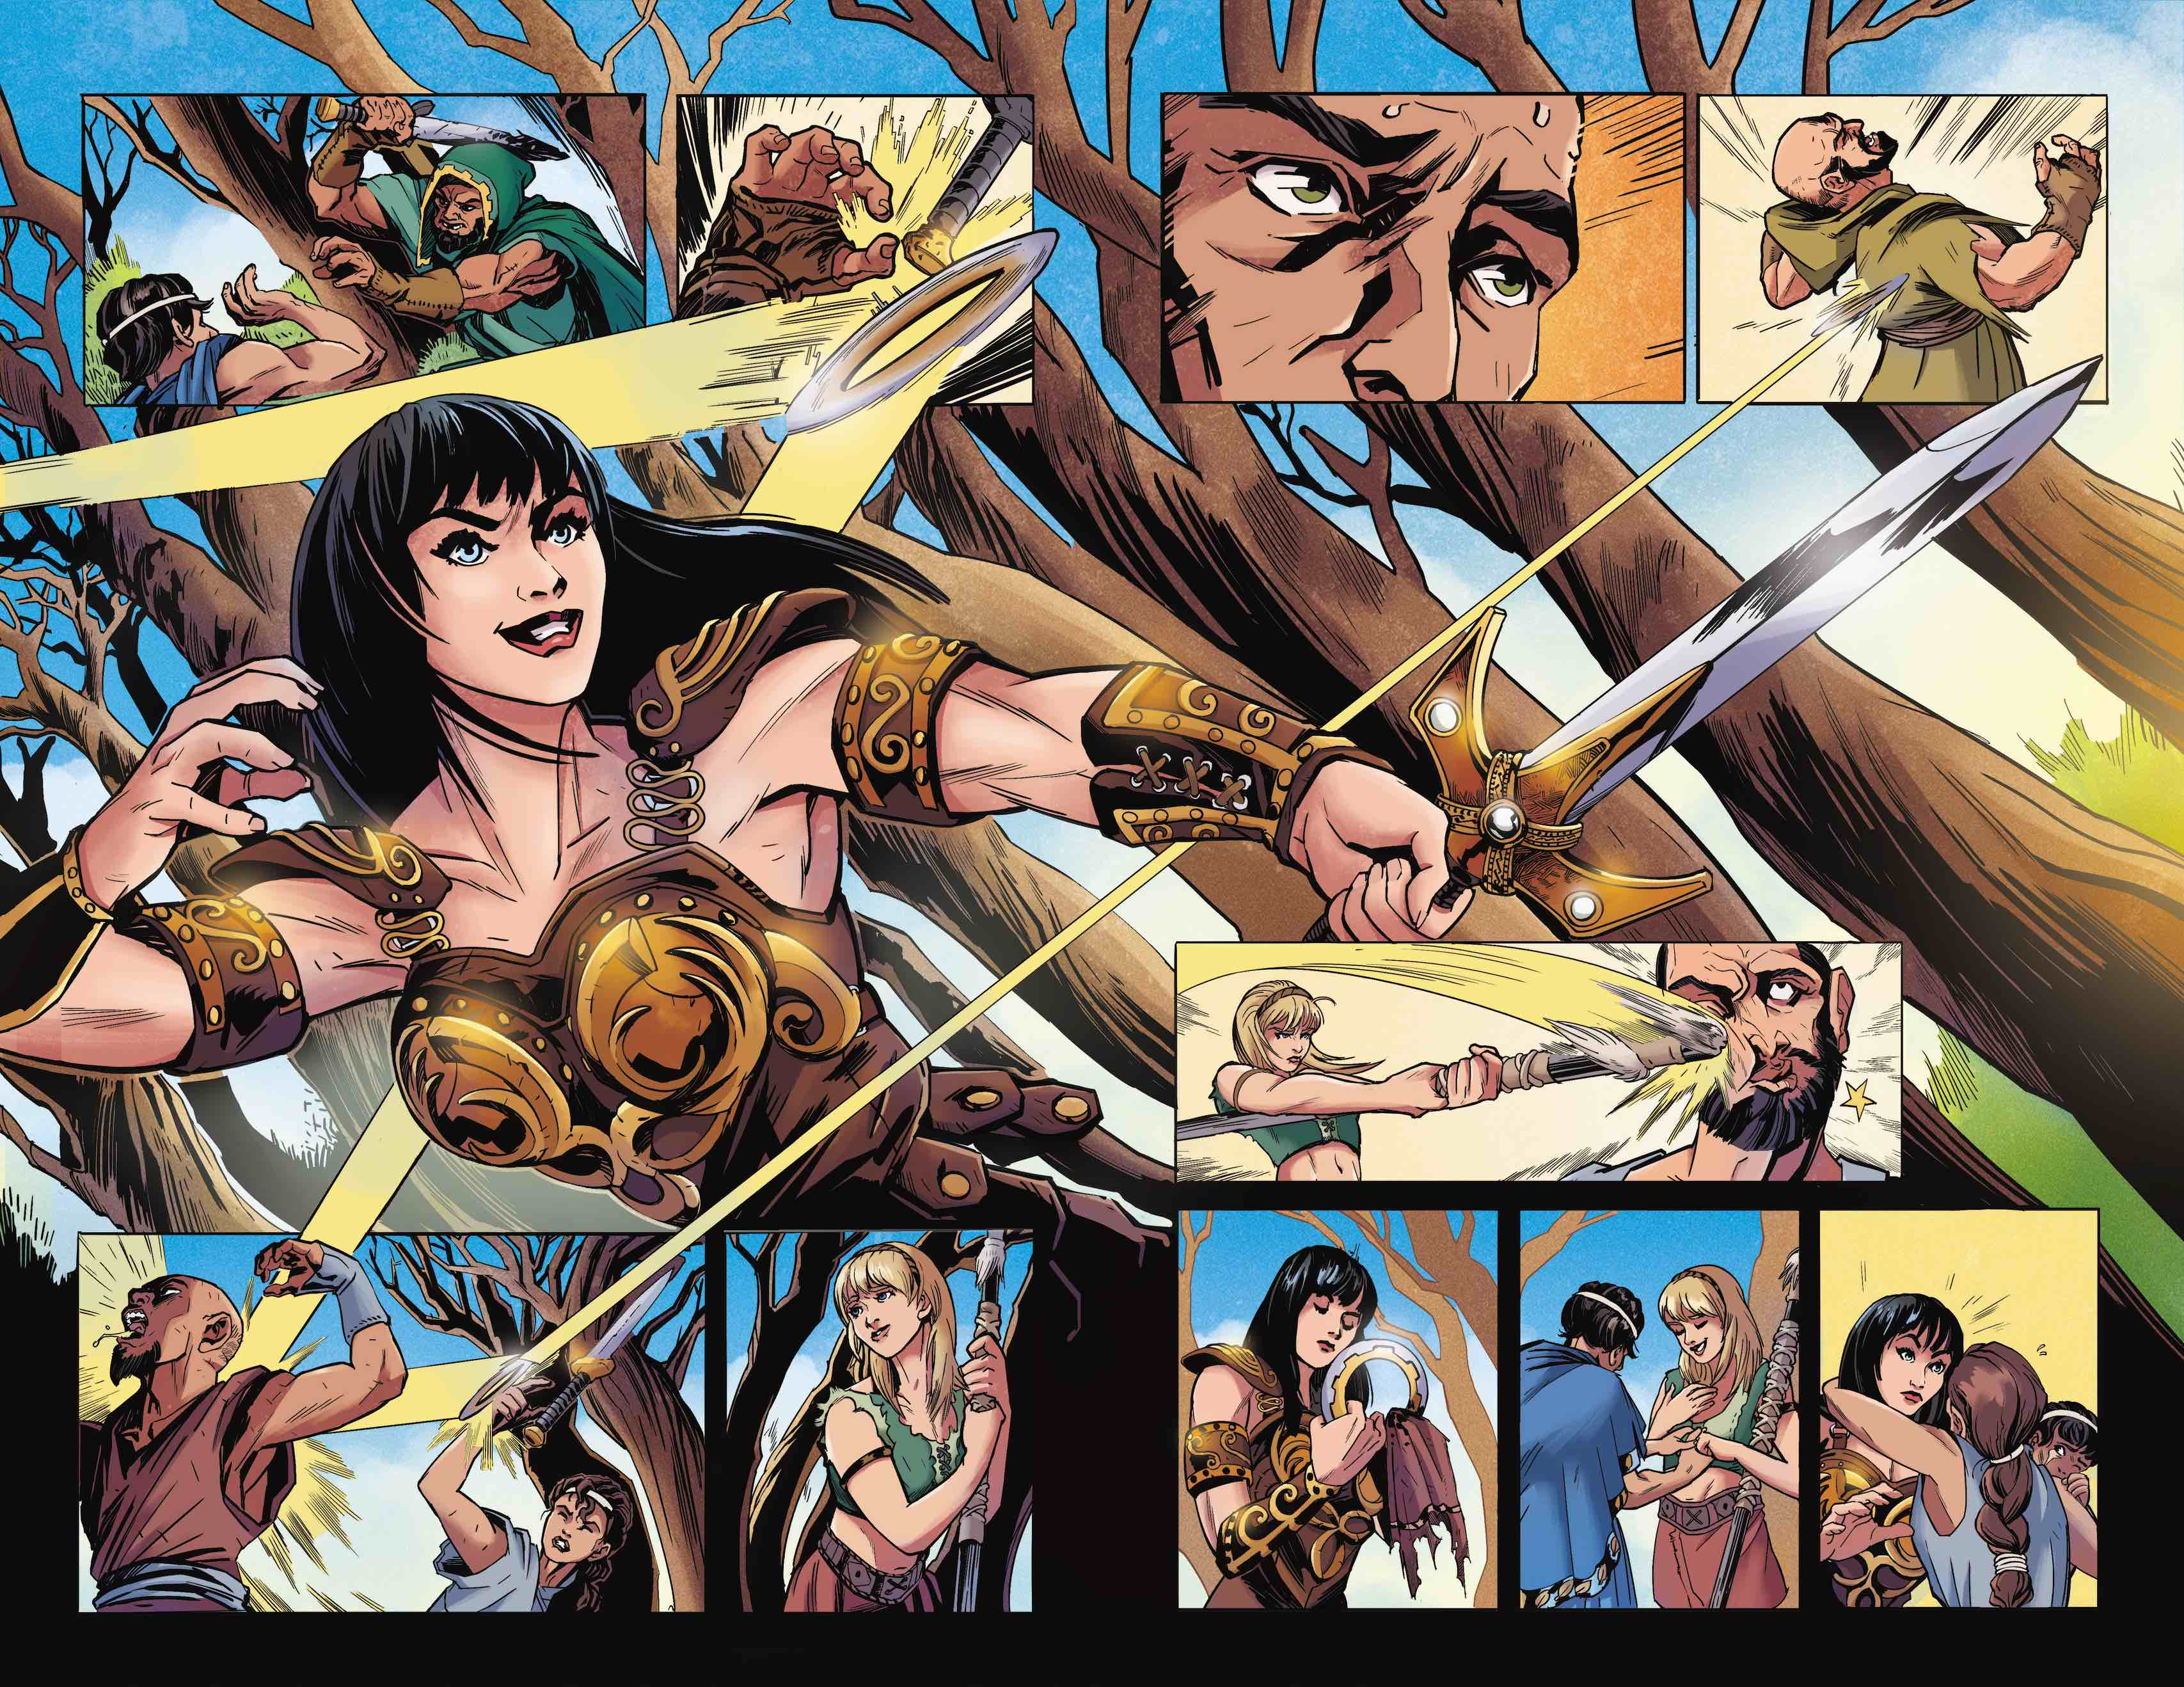 XENA-001-02-03-COLOR.jpg